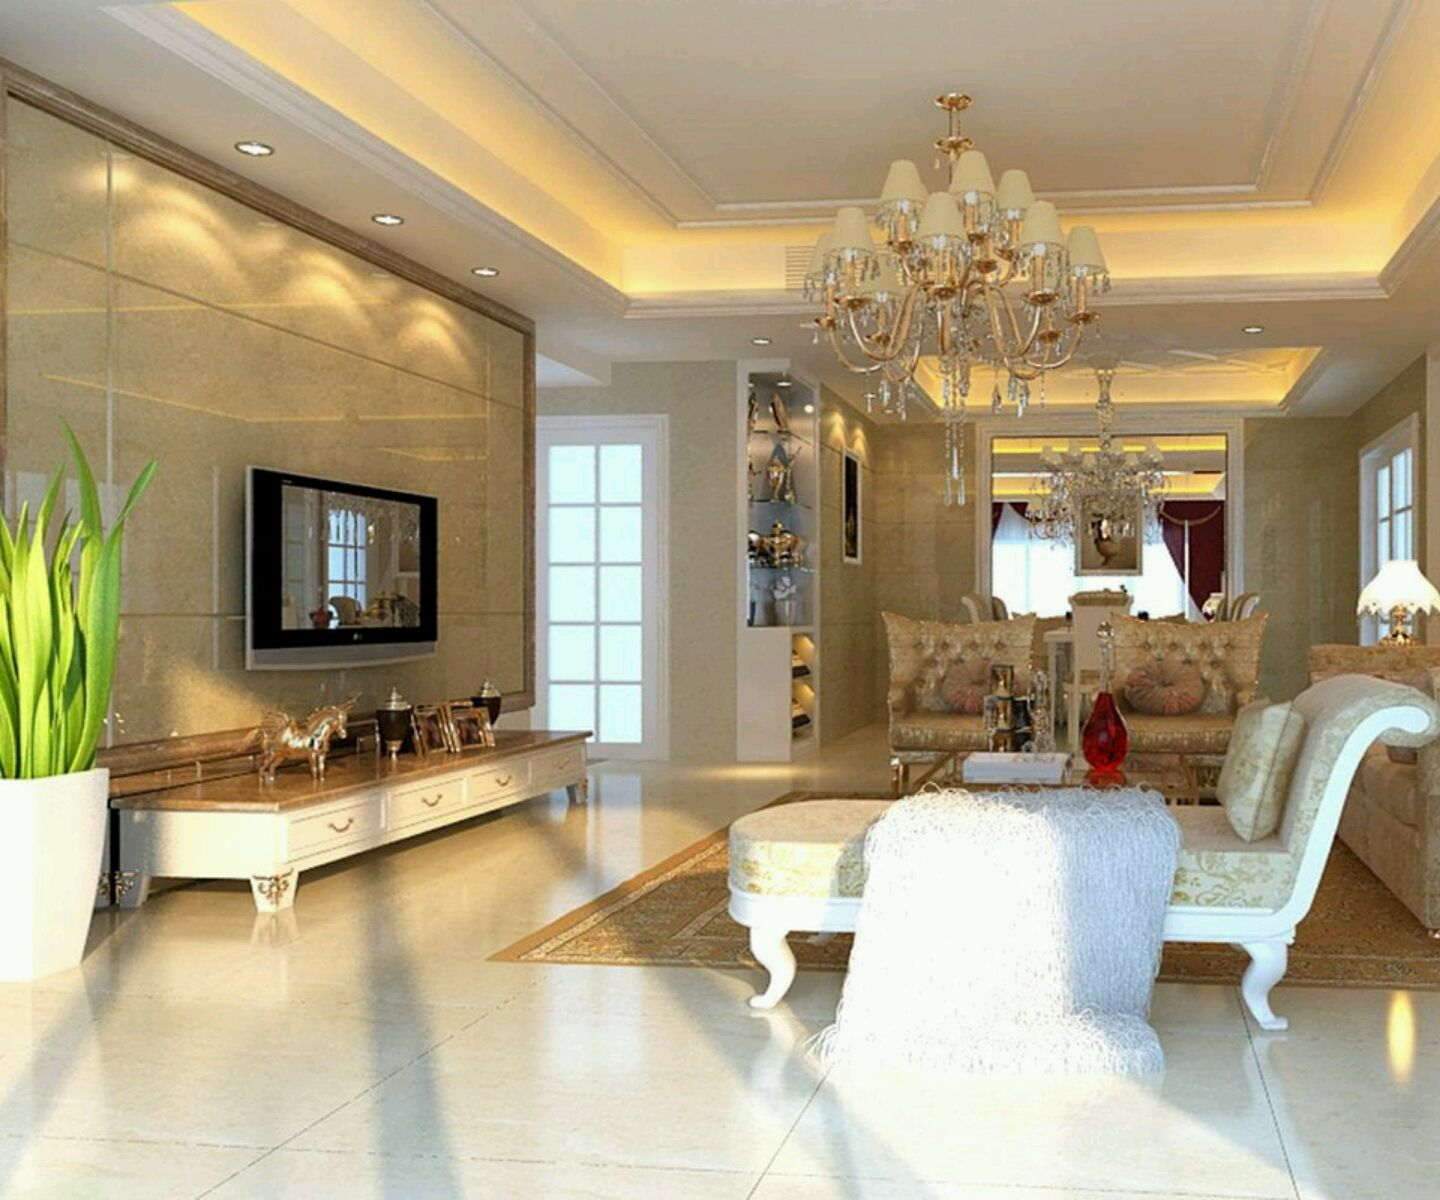 25 Stunning Home Interior Designs Ideas: Luxury Homes Interior Decoration Living Room Designs Ideas